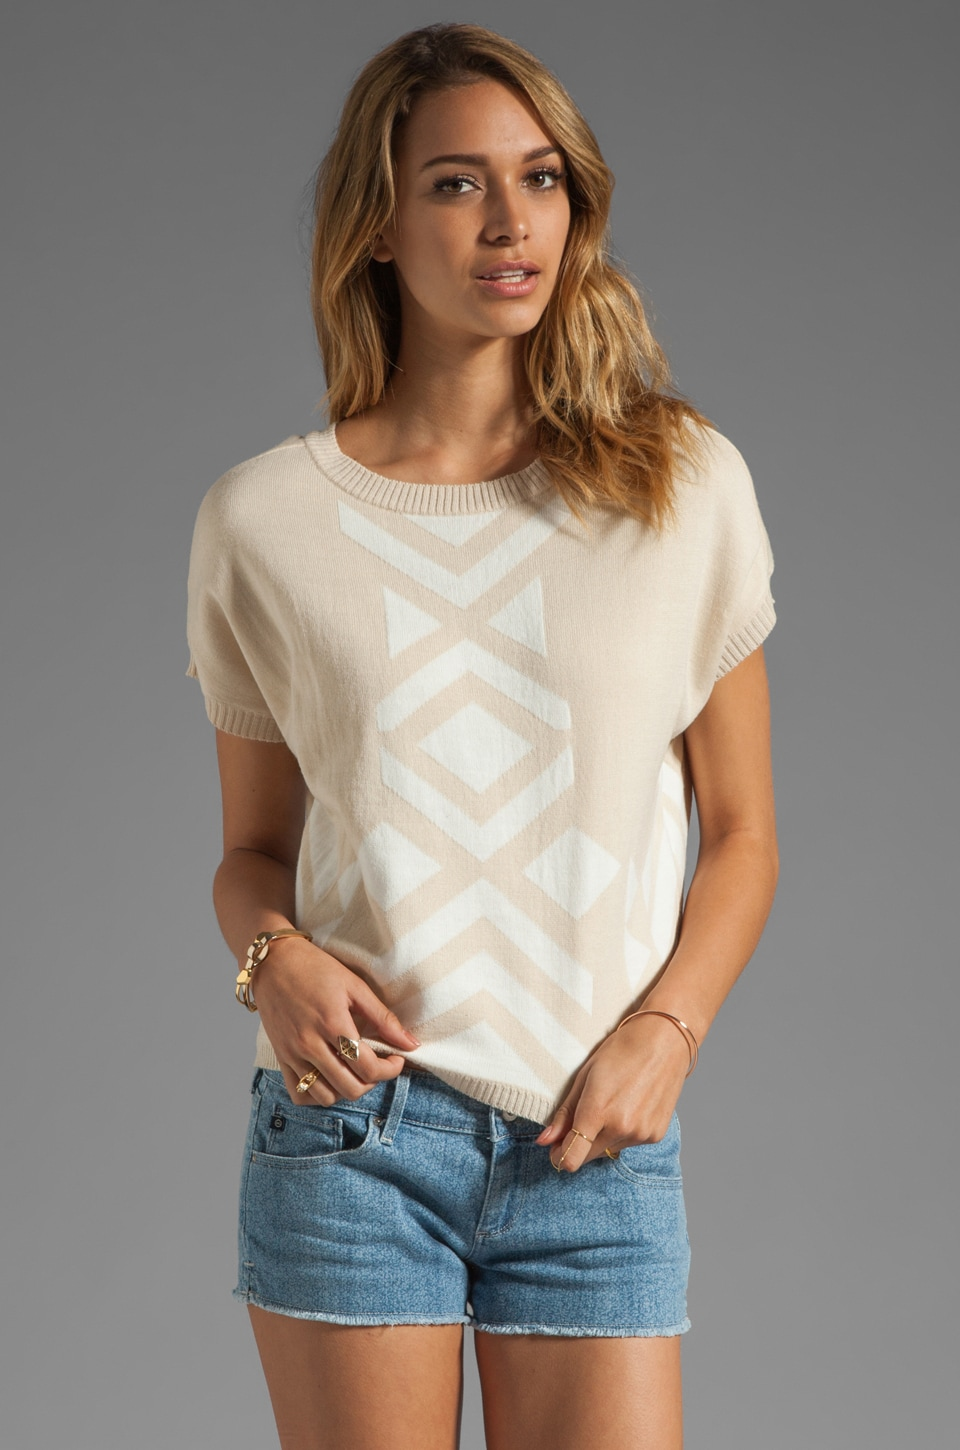 Ash-Rain-Oak Ynez Short Sleeve Intarsia Sweater in Oatmeal